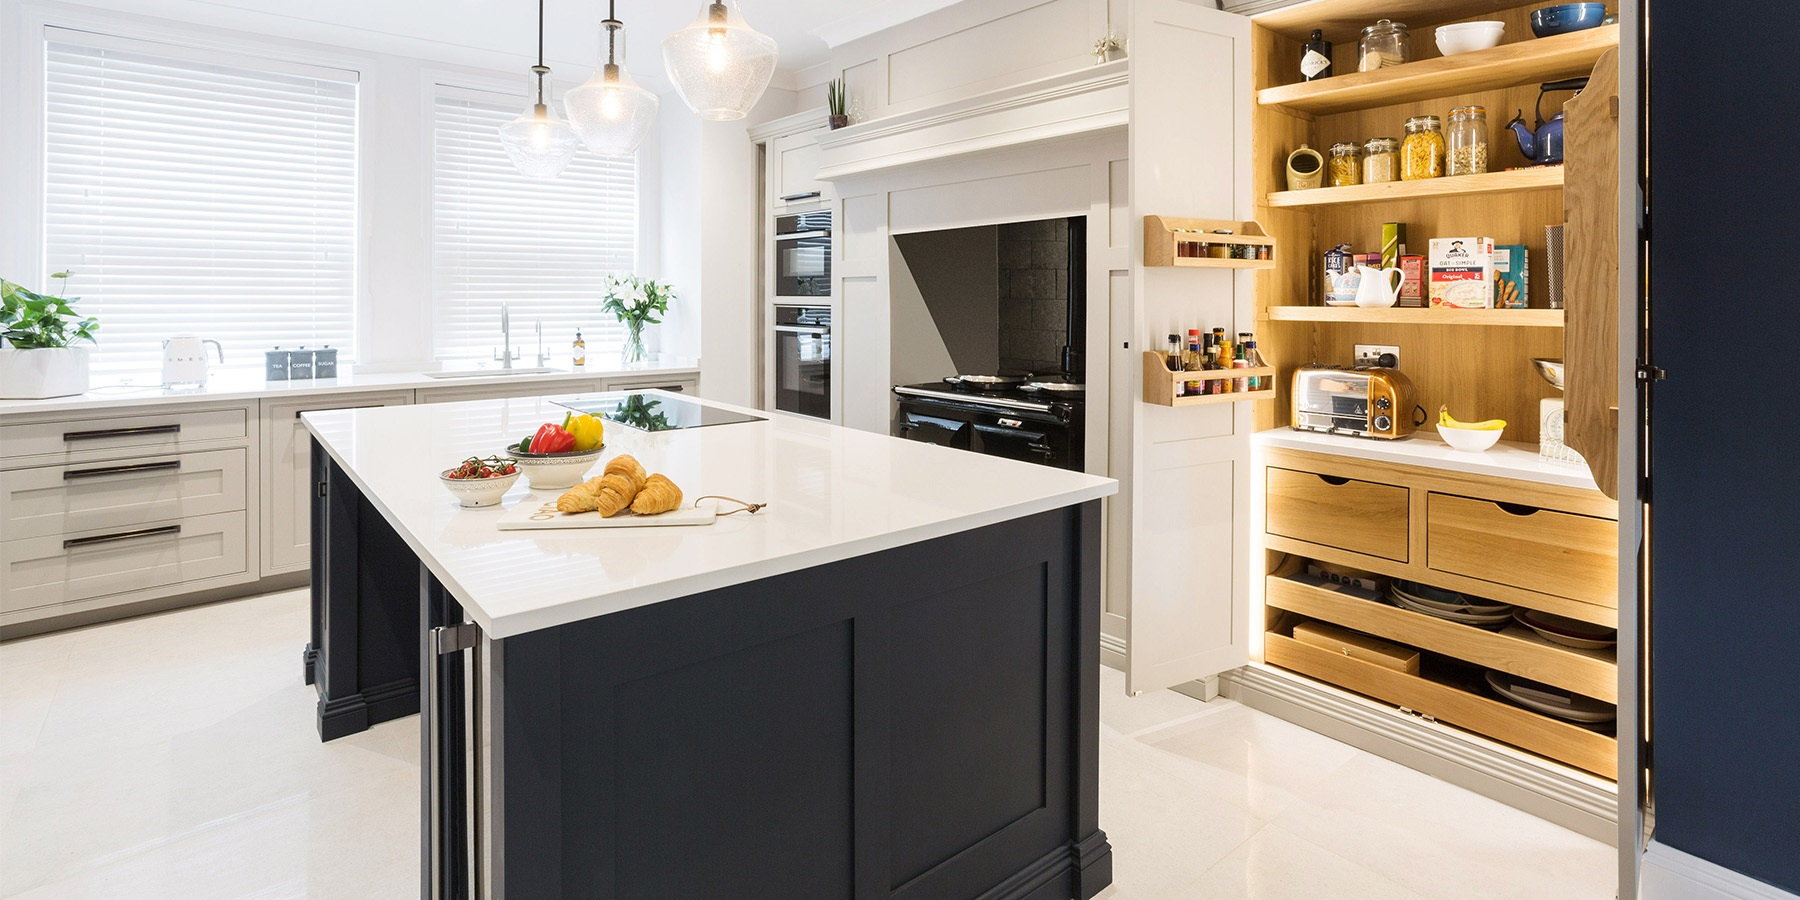 Classic grey and blue shaker kitchen - Burlanes handmade Wellsdown kitchen in grey, with blue central island and larder unit.